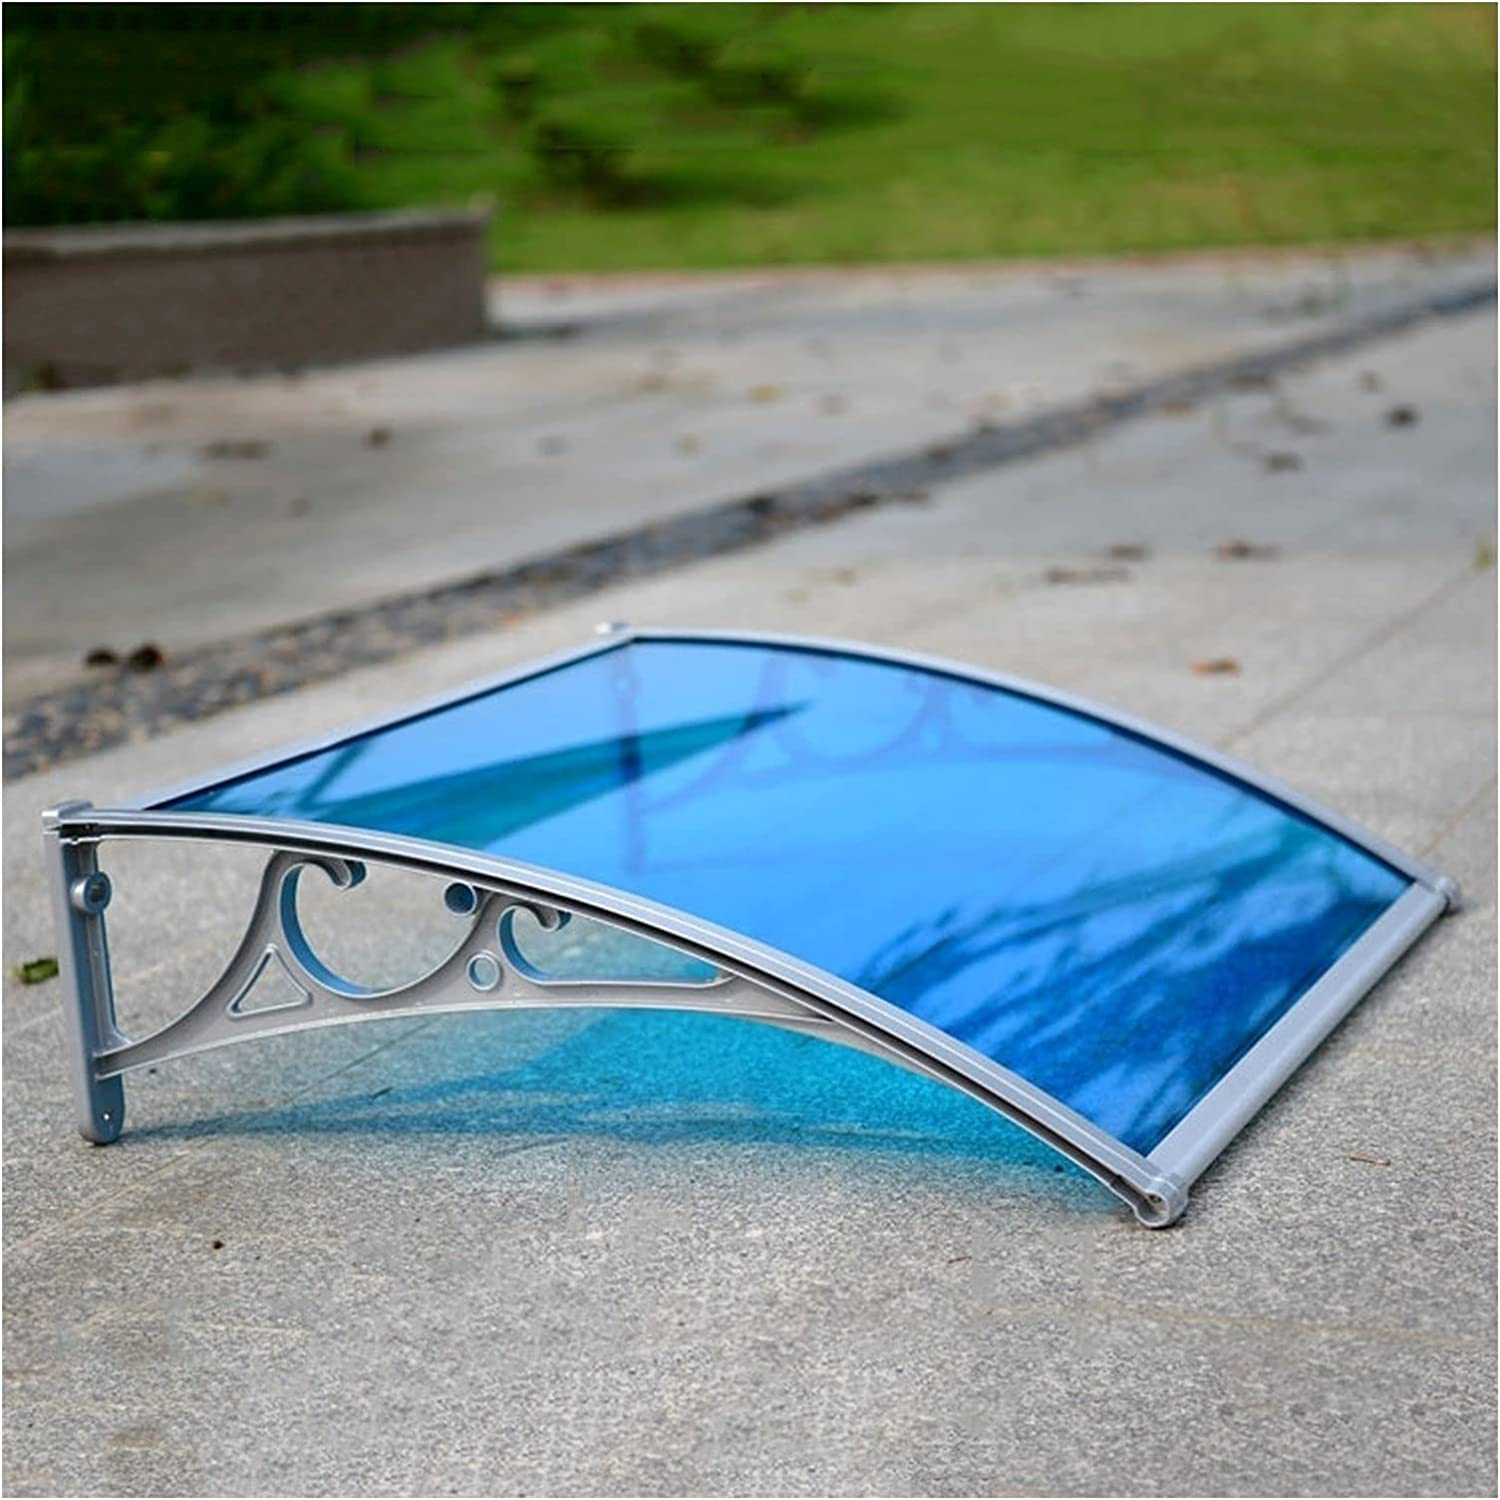 Limited time trial price WMMING Entrance Eaves Canopy Mute Polycarbonate Pa Rainproof PC High order